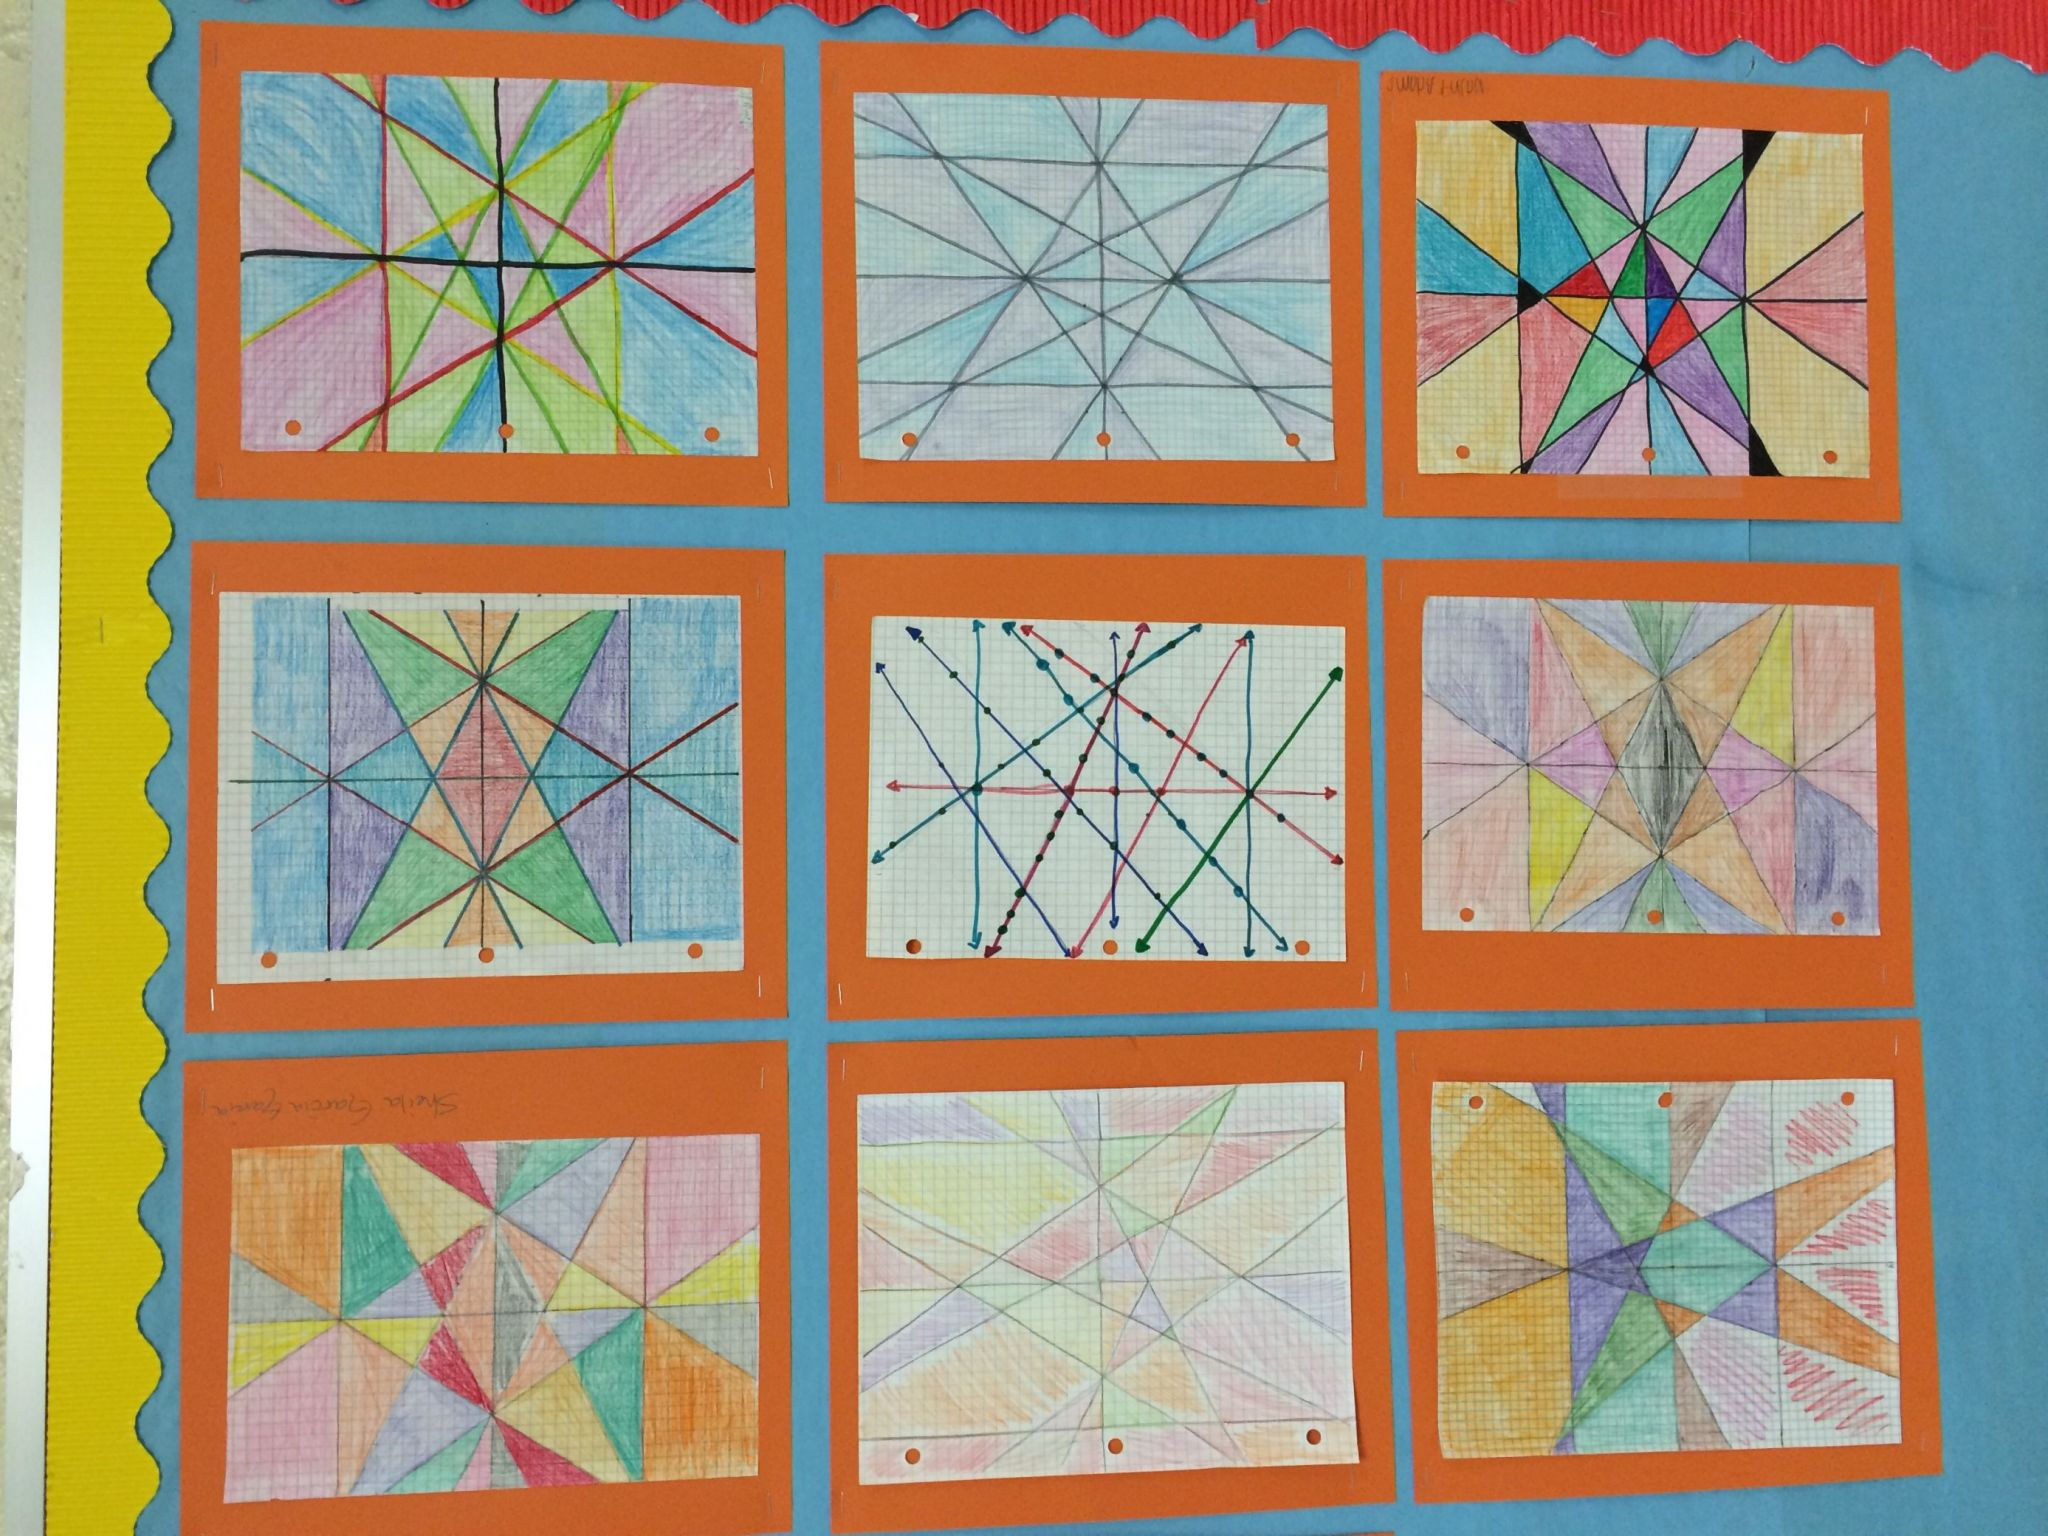 Stained Glass Transformations Worksheet Answers